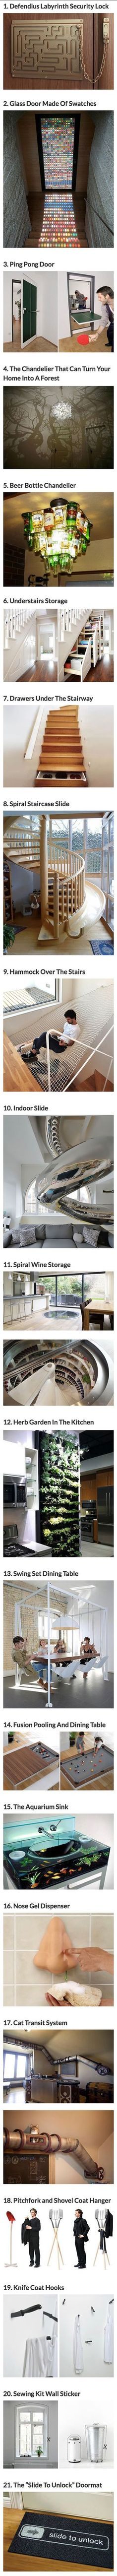 best ordnung images on pinterest organizers for the home and